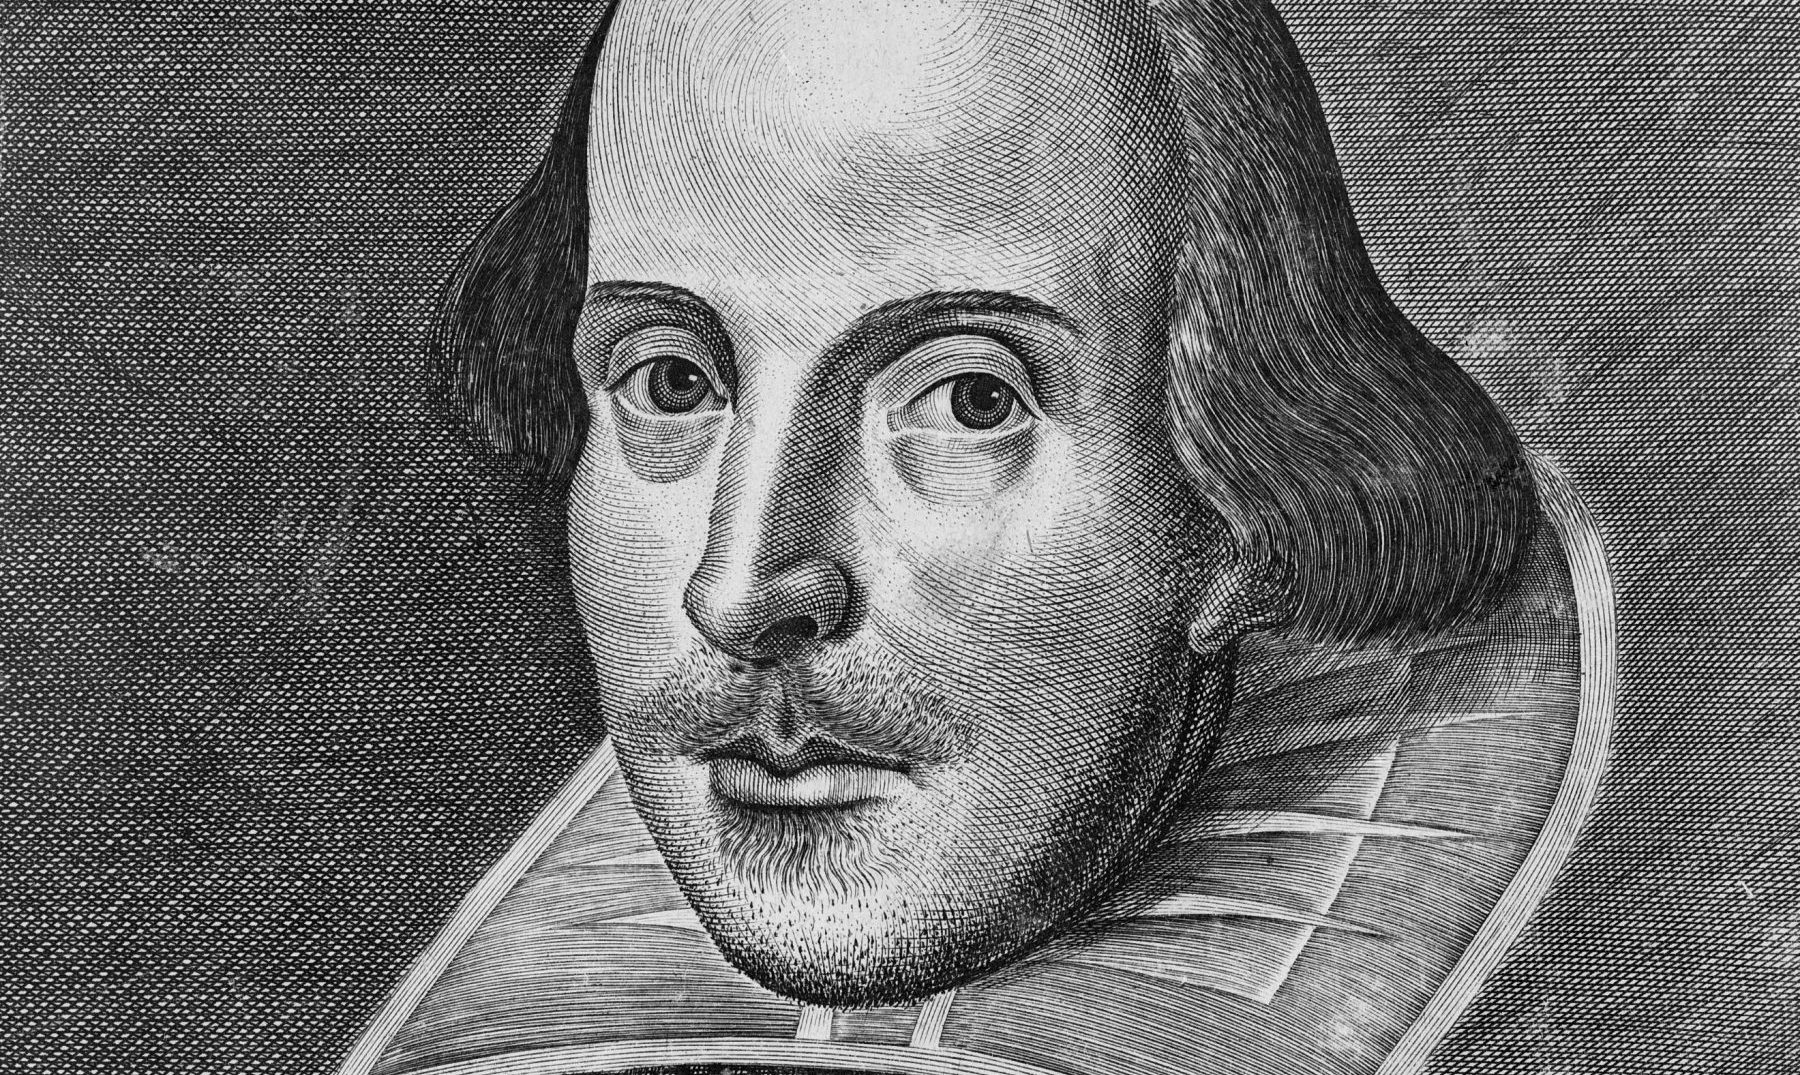 Frases Celebres William Shakespeare Las Palabras Inventadas Por William Shakespeare Revolucionaron El